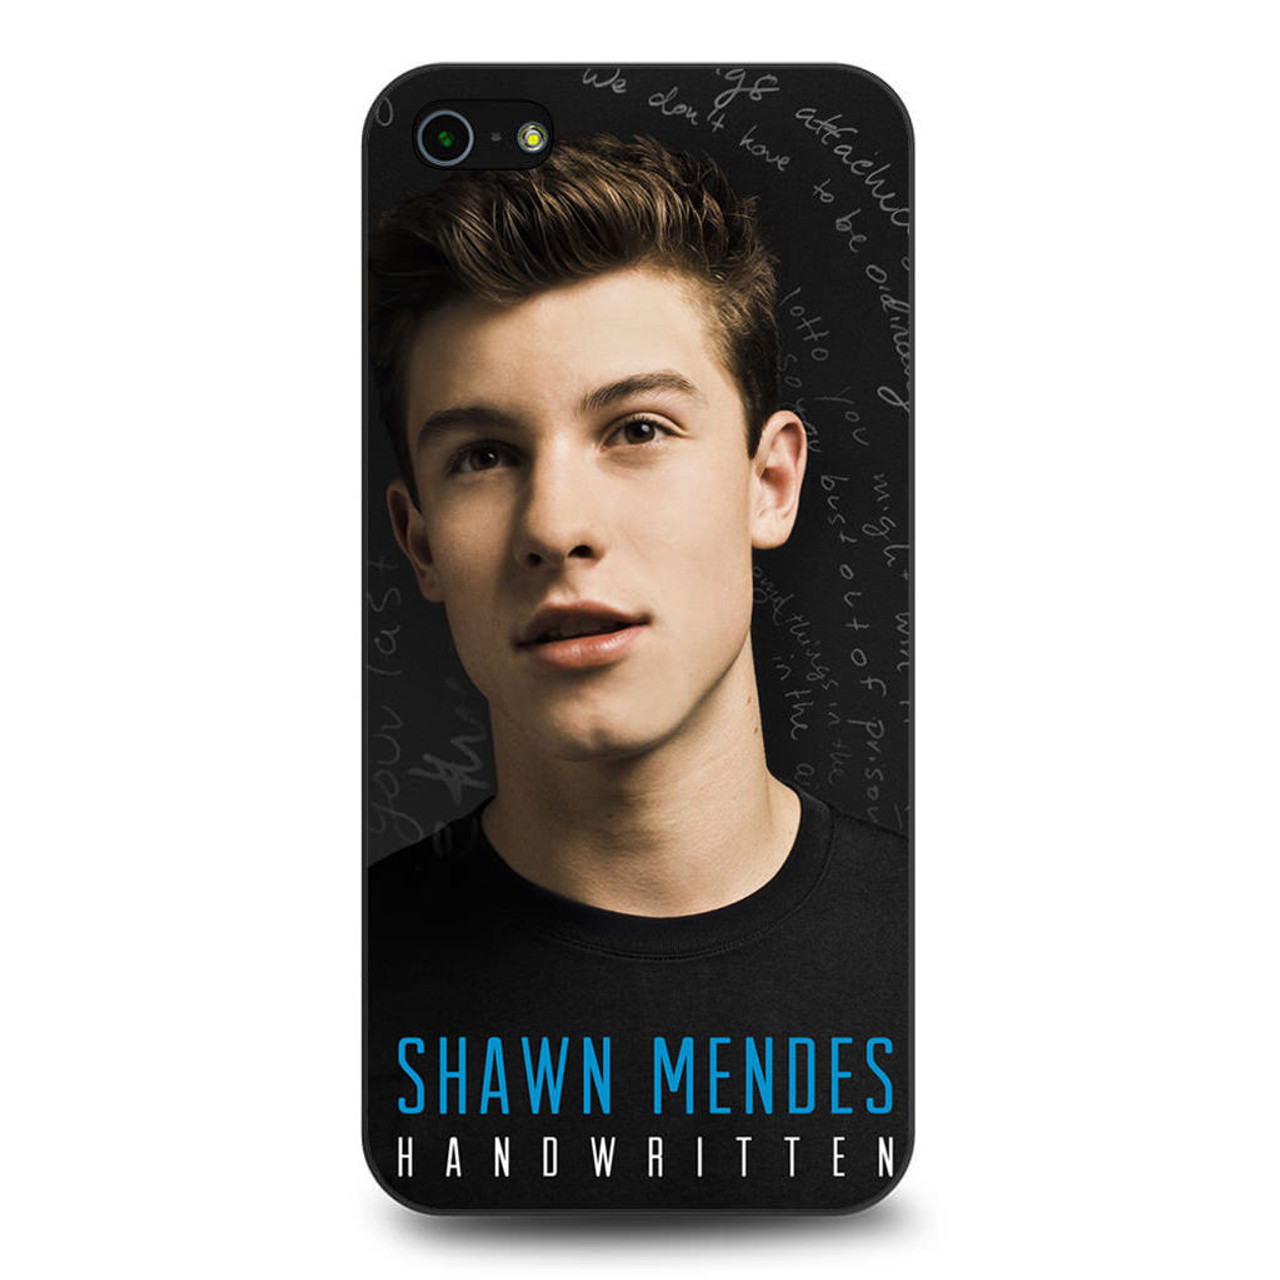 huge selection of 06c23 98be5 Shawn Mendes iPhone 5/5S/SE Case